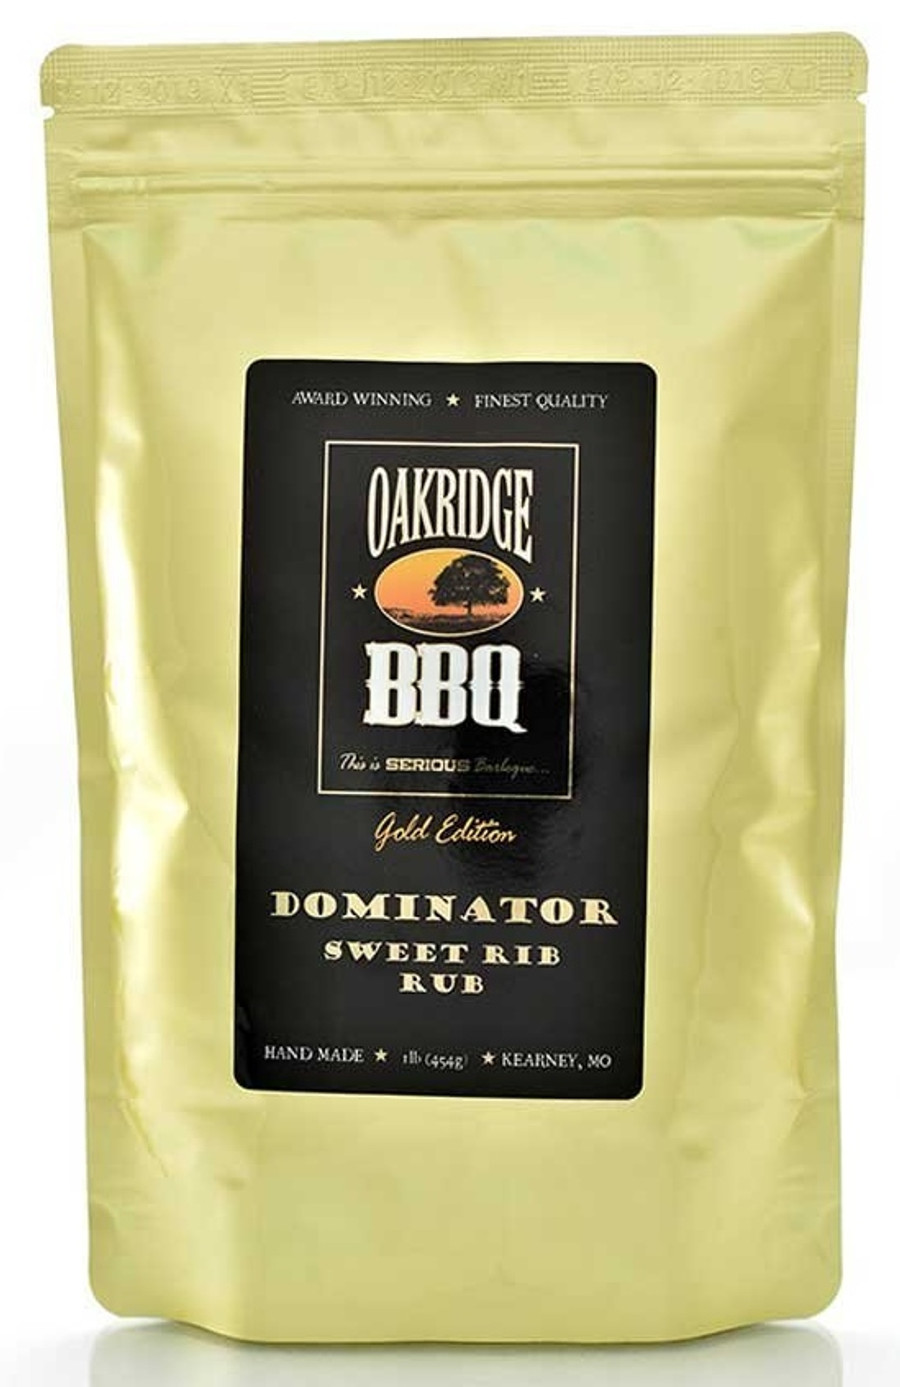 Dominator Sweet Rib Rub 1lb